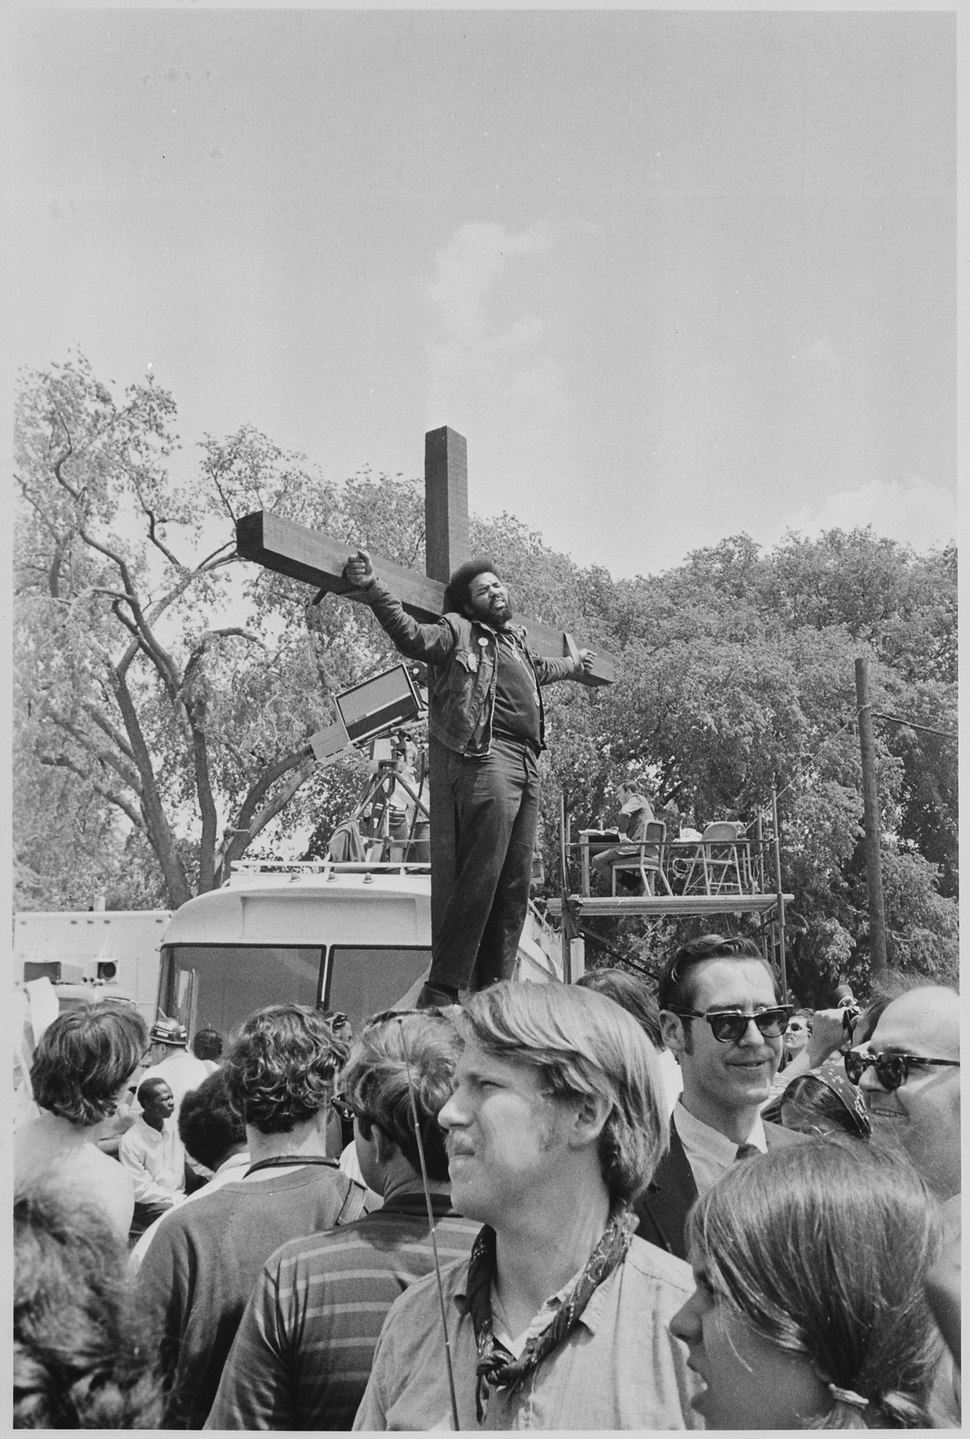 Protester tied to a cross in Washington D.C - NARA - 194675